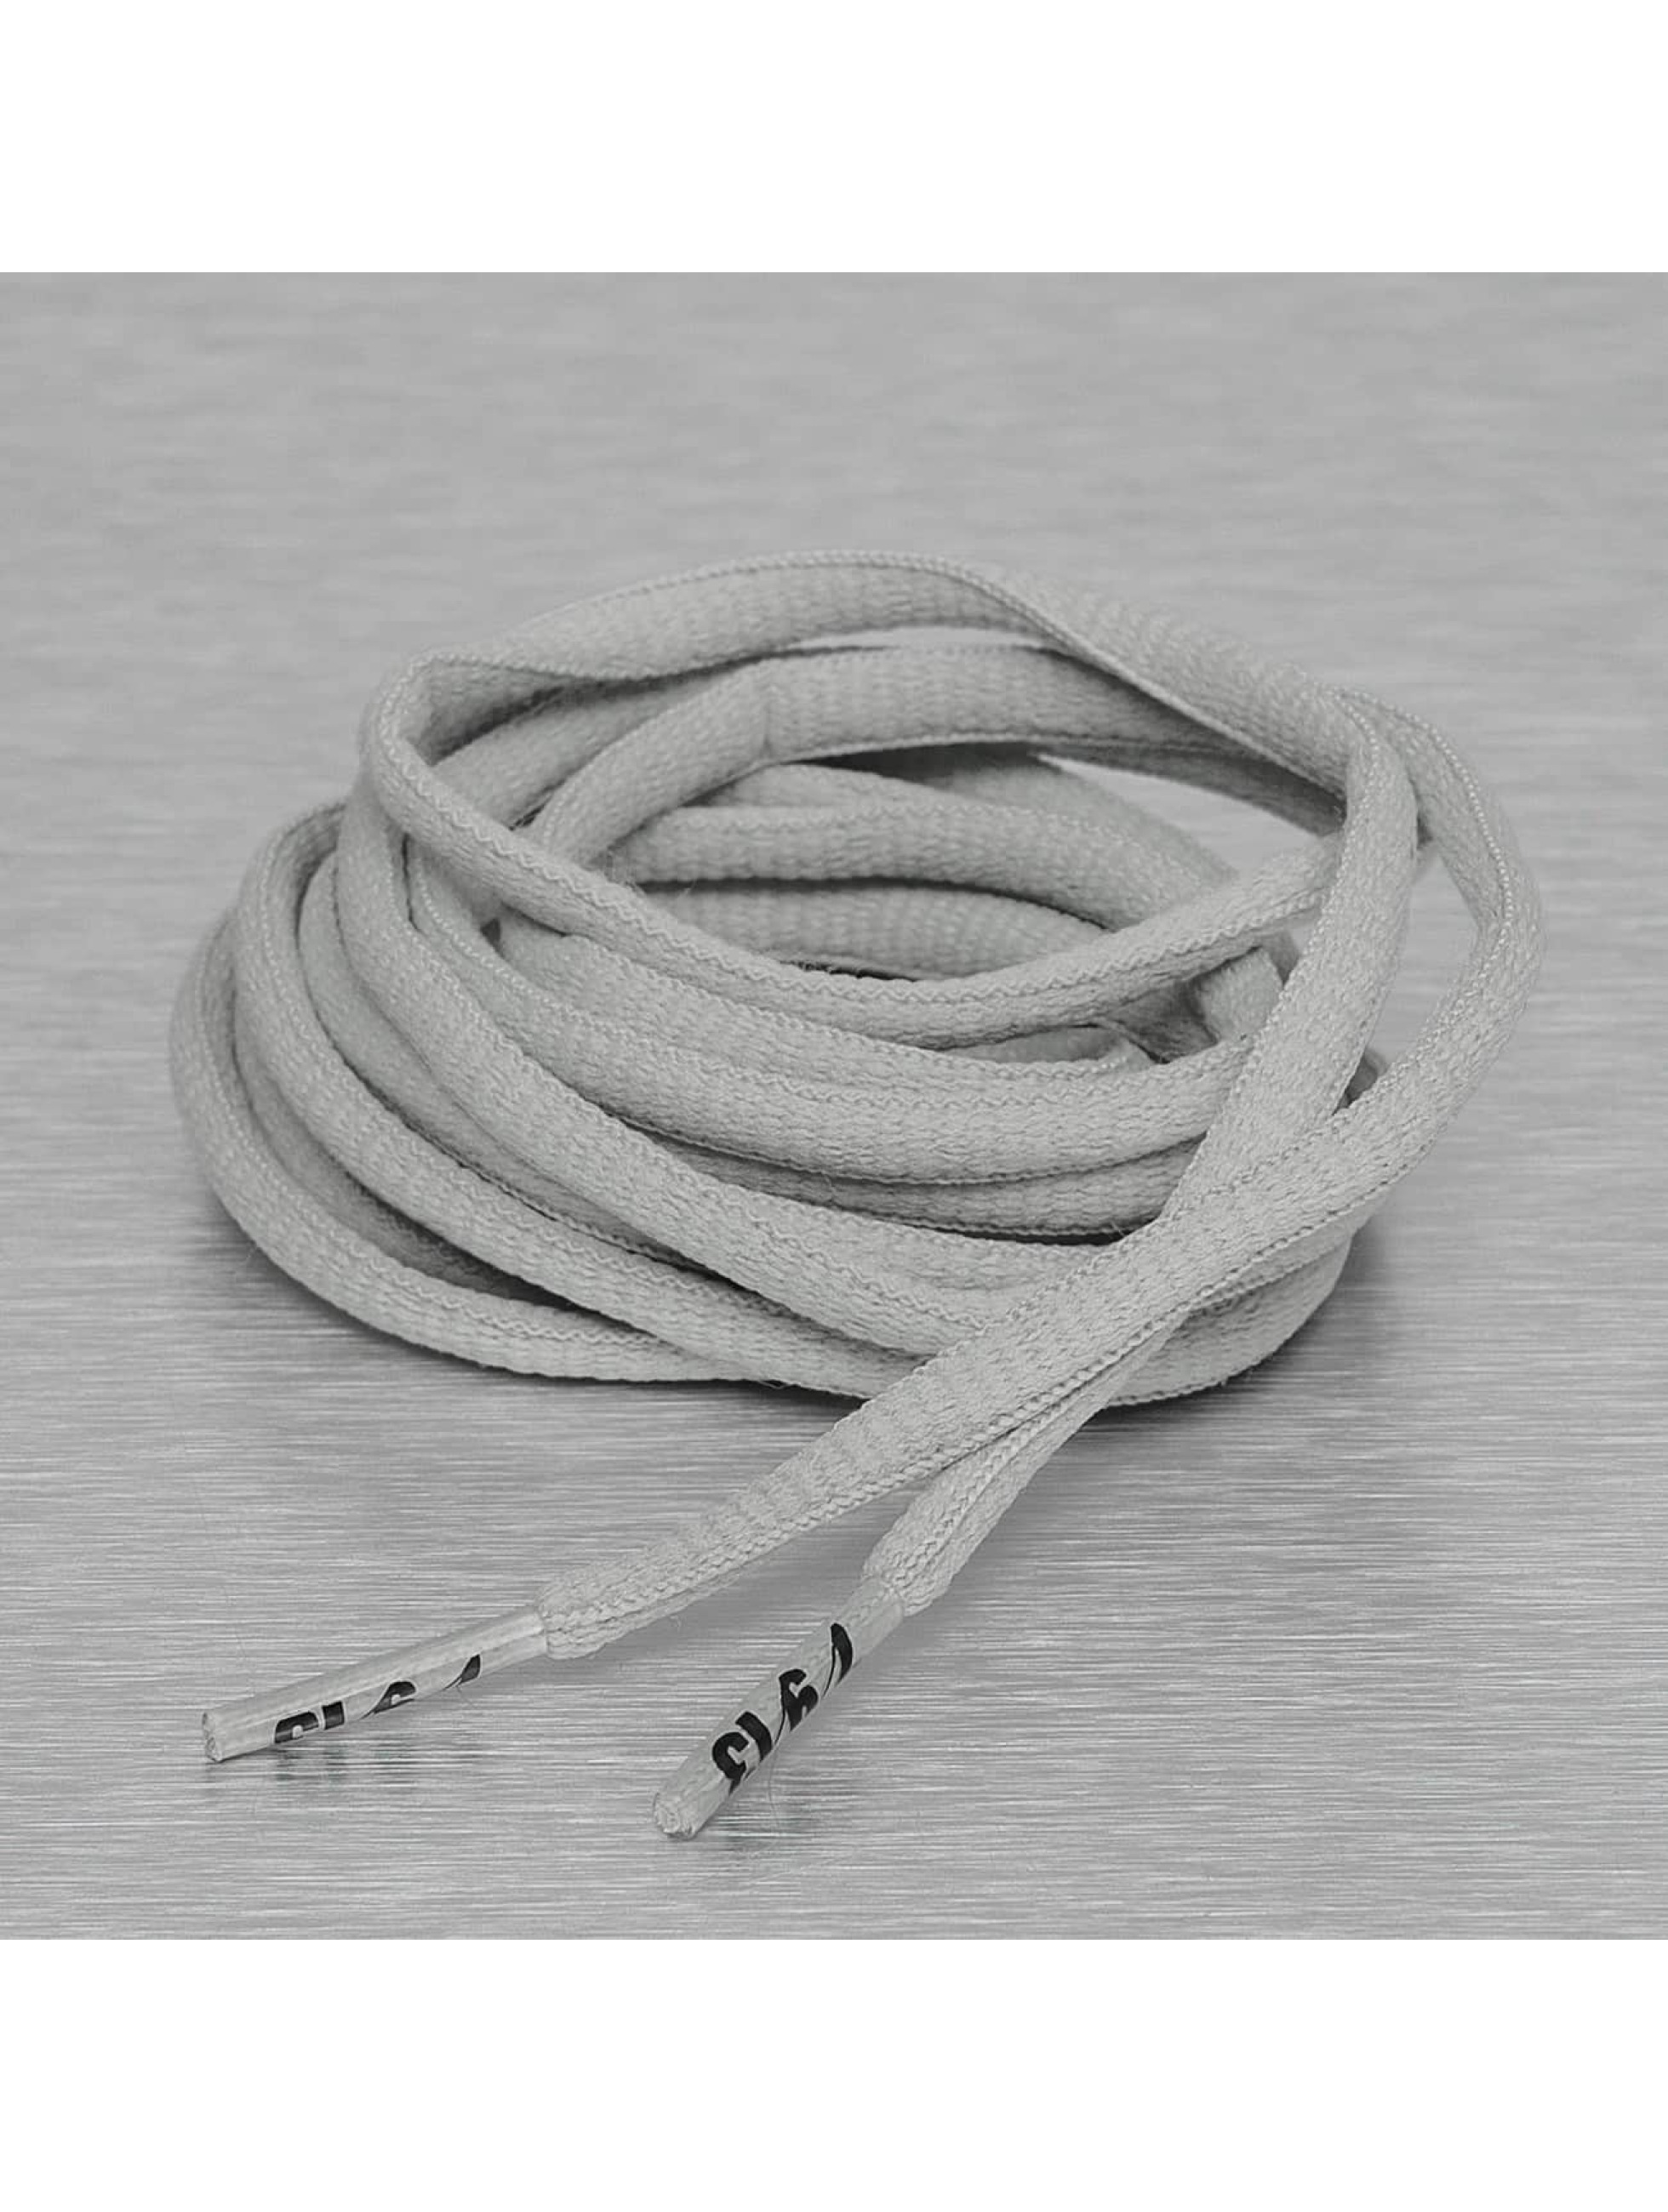 Seven Nine 13 Shoelace Hard Candy Round gray